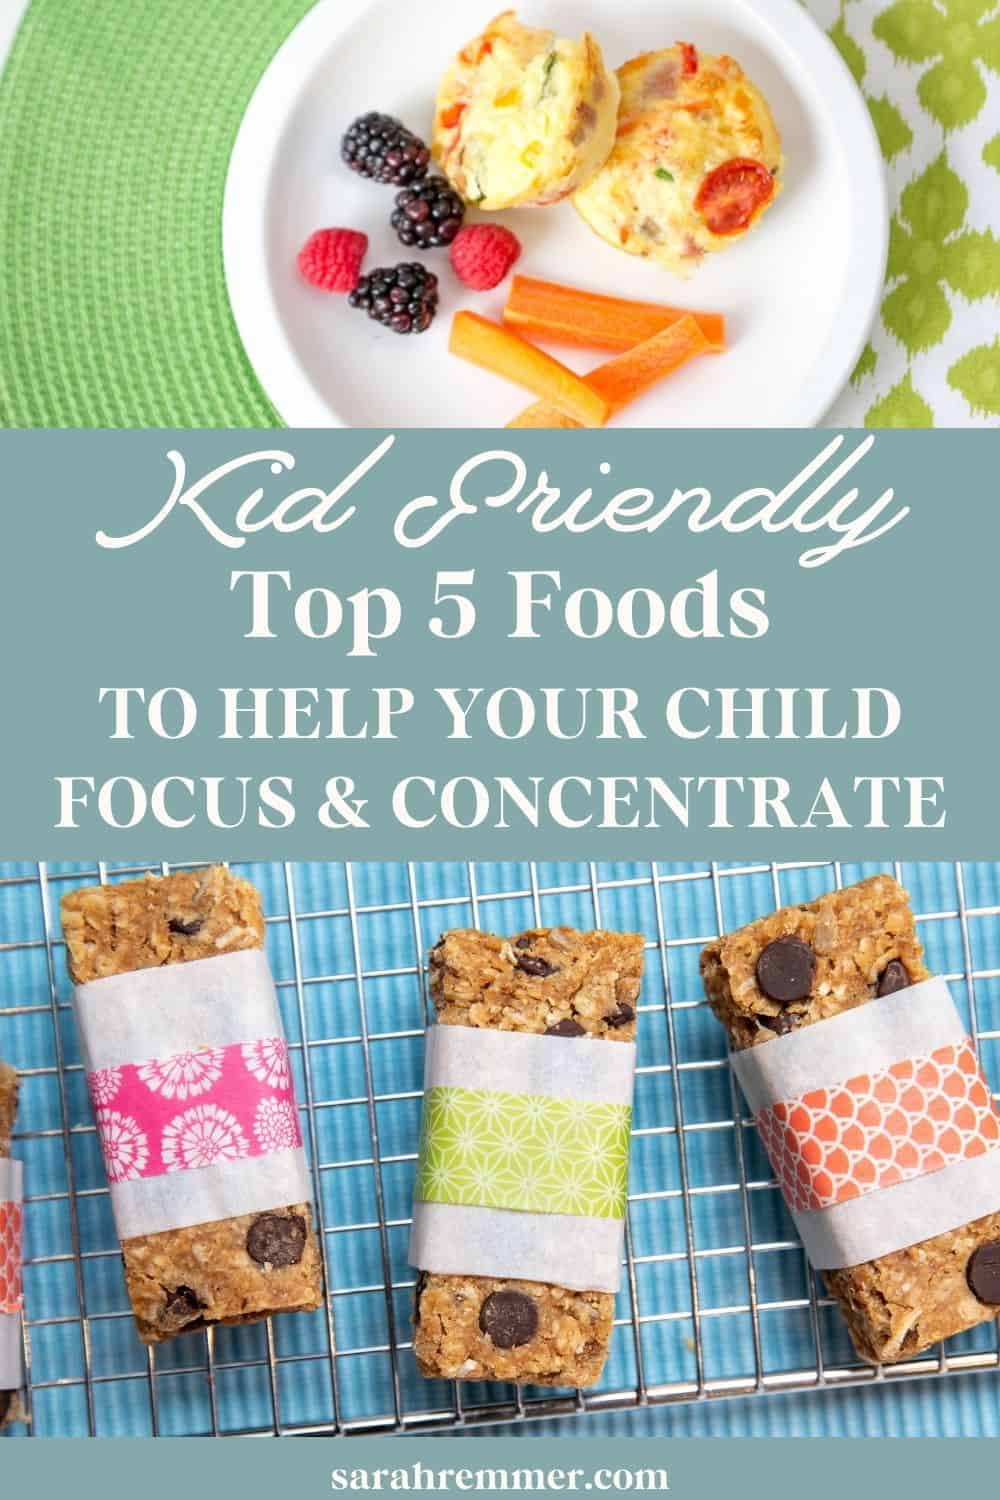 Top 5 Foods to Help your Child Concentrate